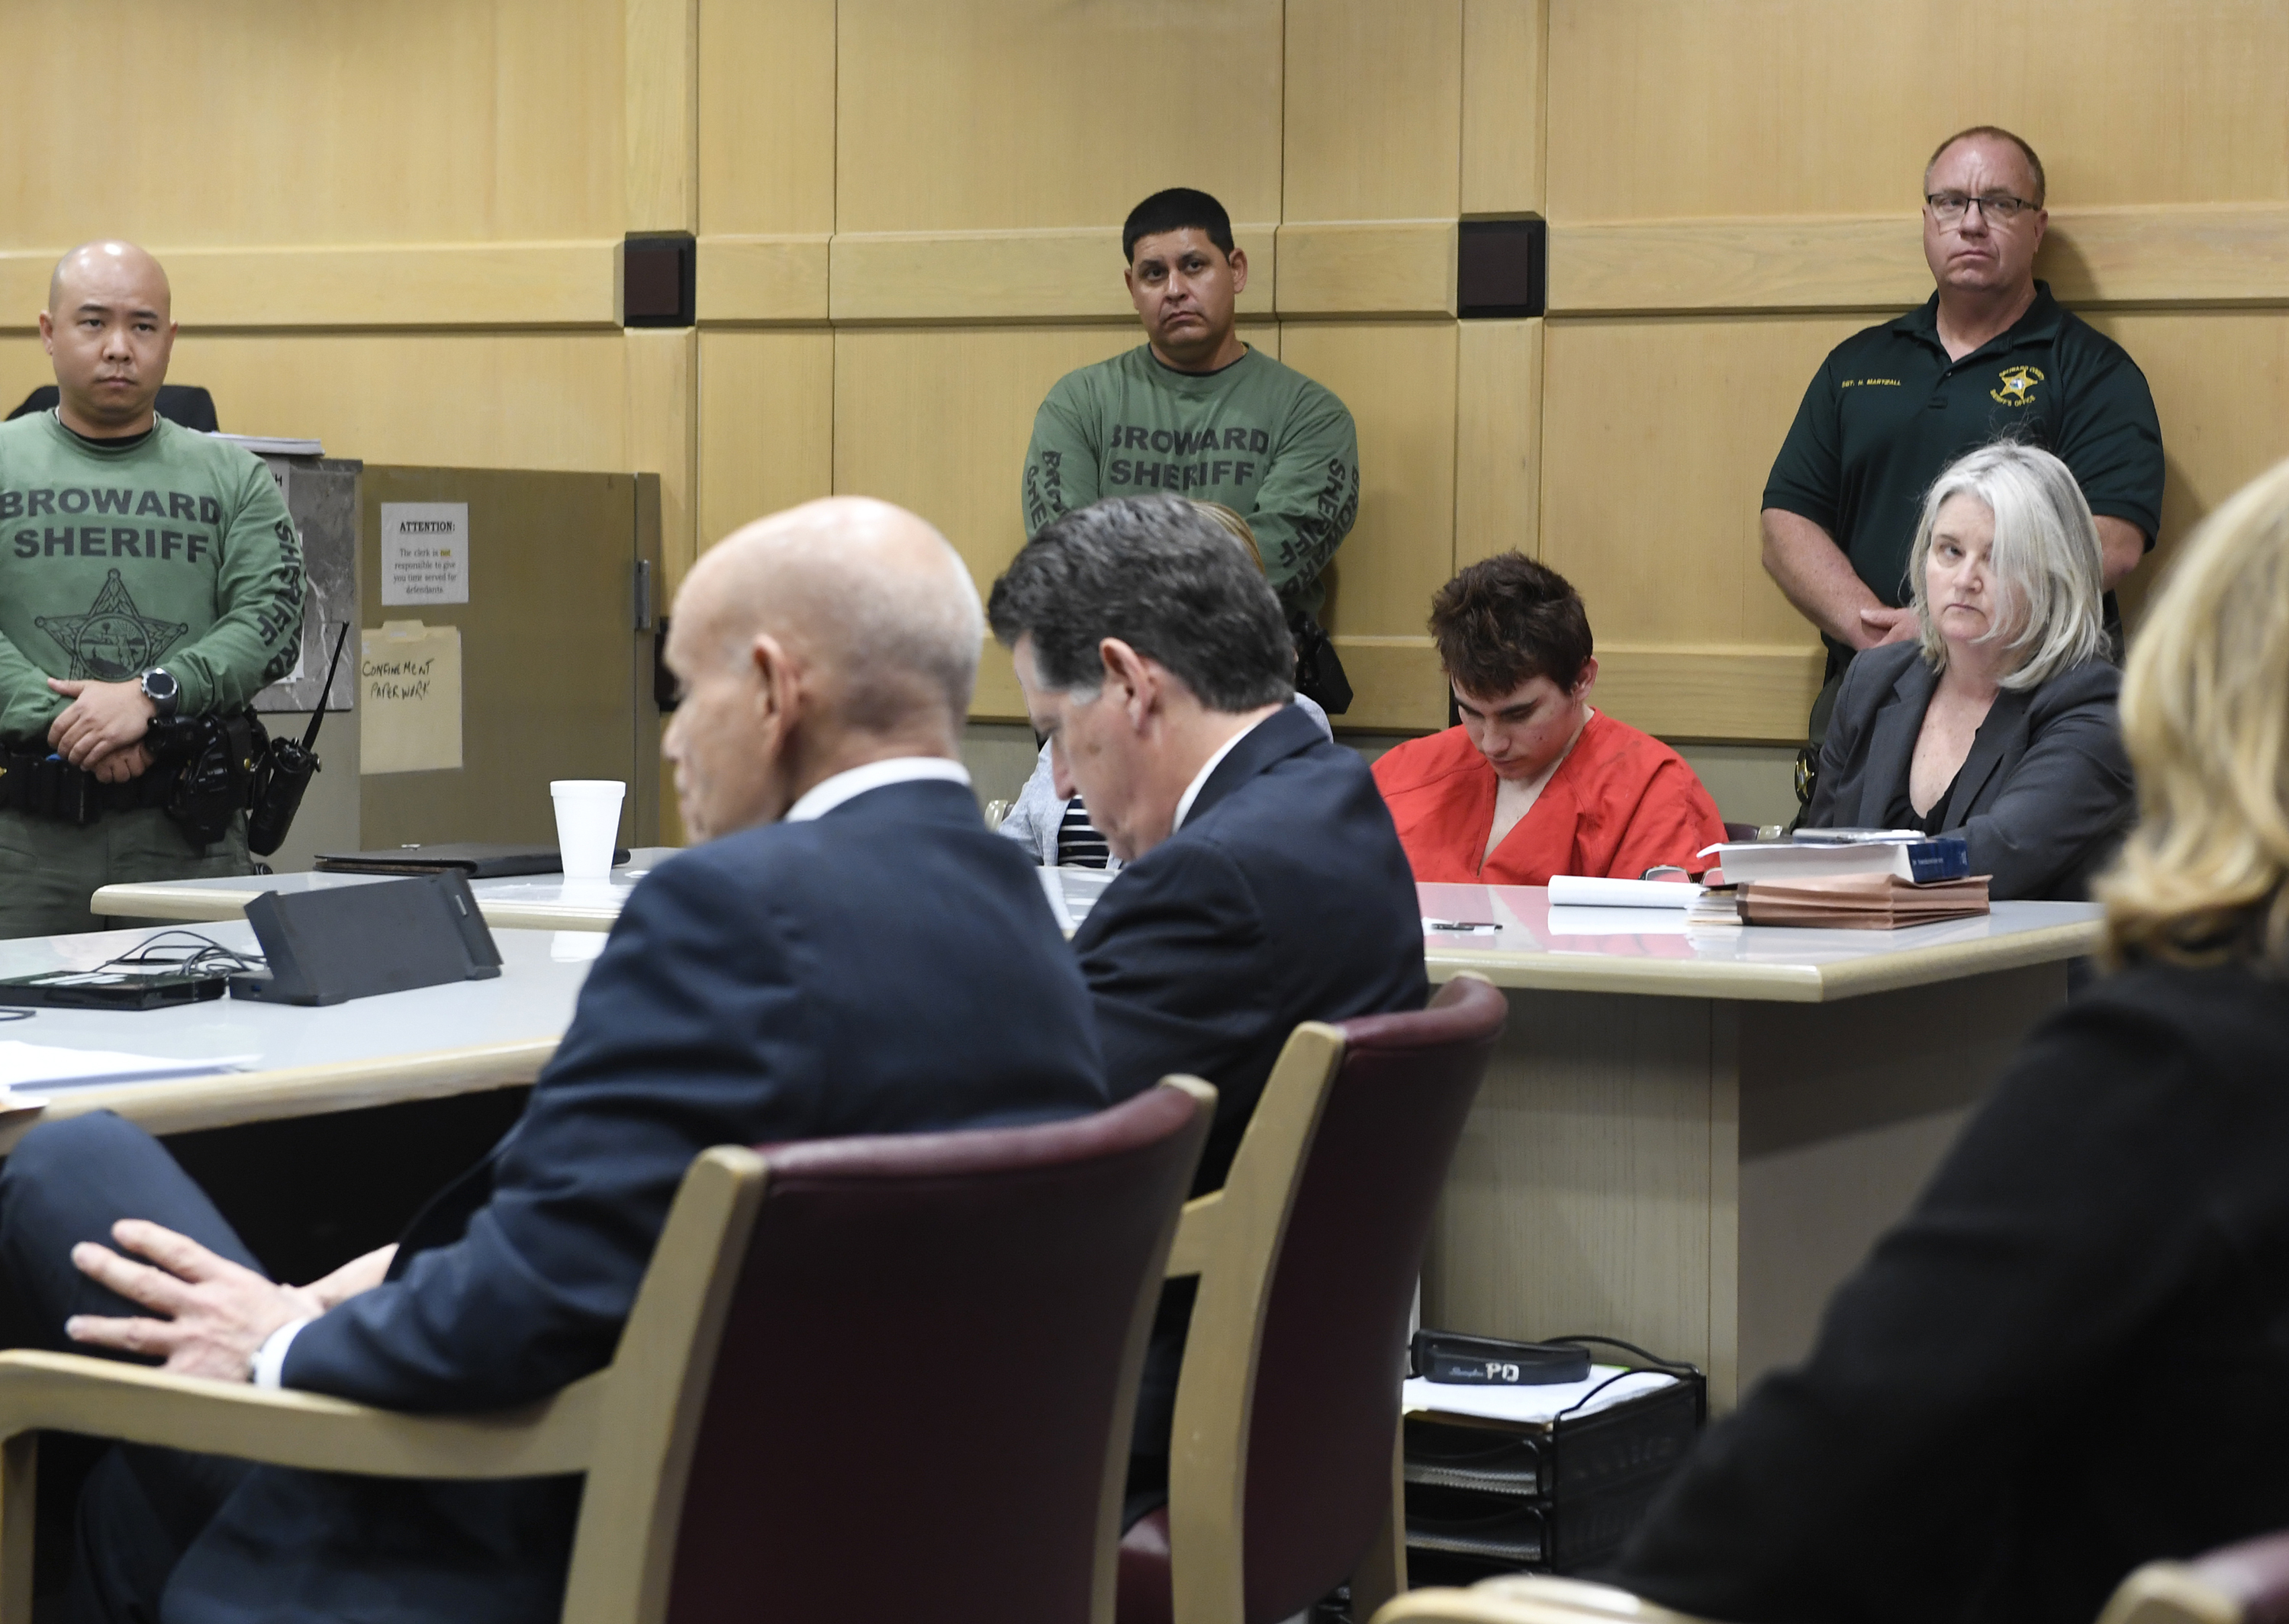 Florida school shooting suspect Nikolas Cruz sits in court during a hearing on April 27, 2018, in Fort Lauderdale, Florida. Taimy Alvarez-Pool/Getty Images